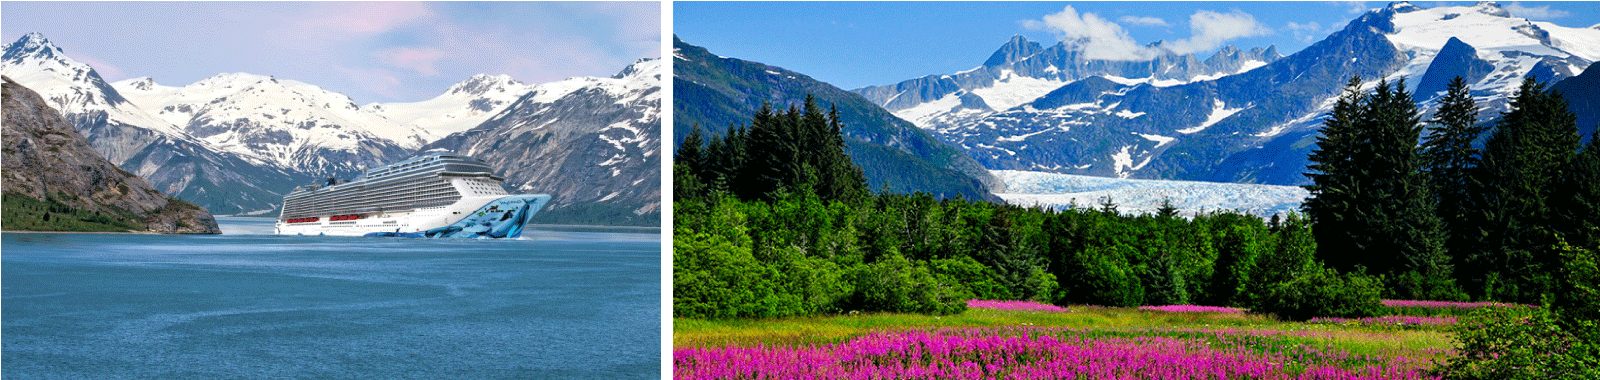 NCL-Bliss-Alaska_Featured